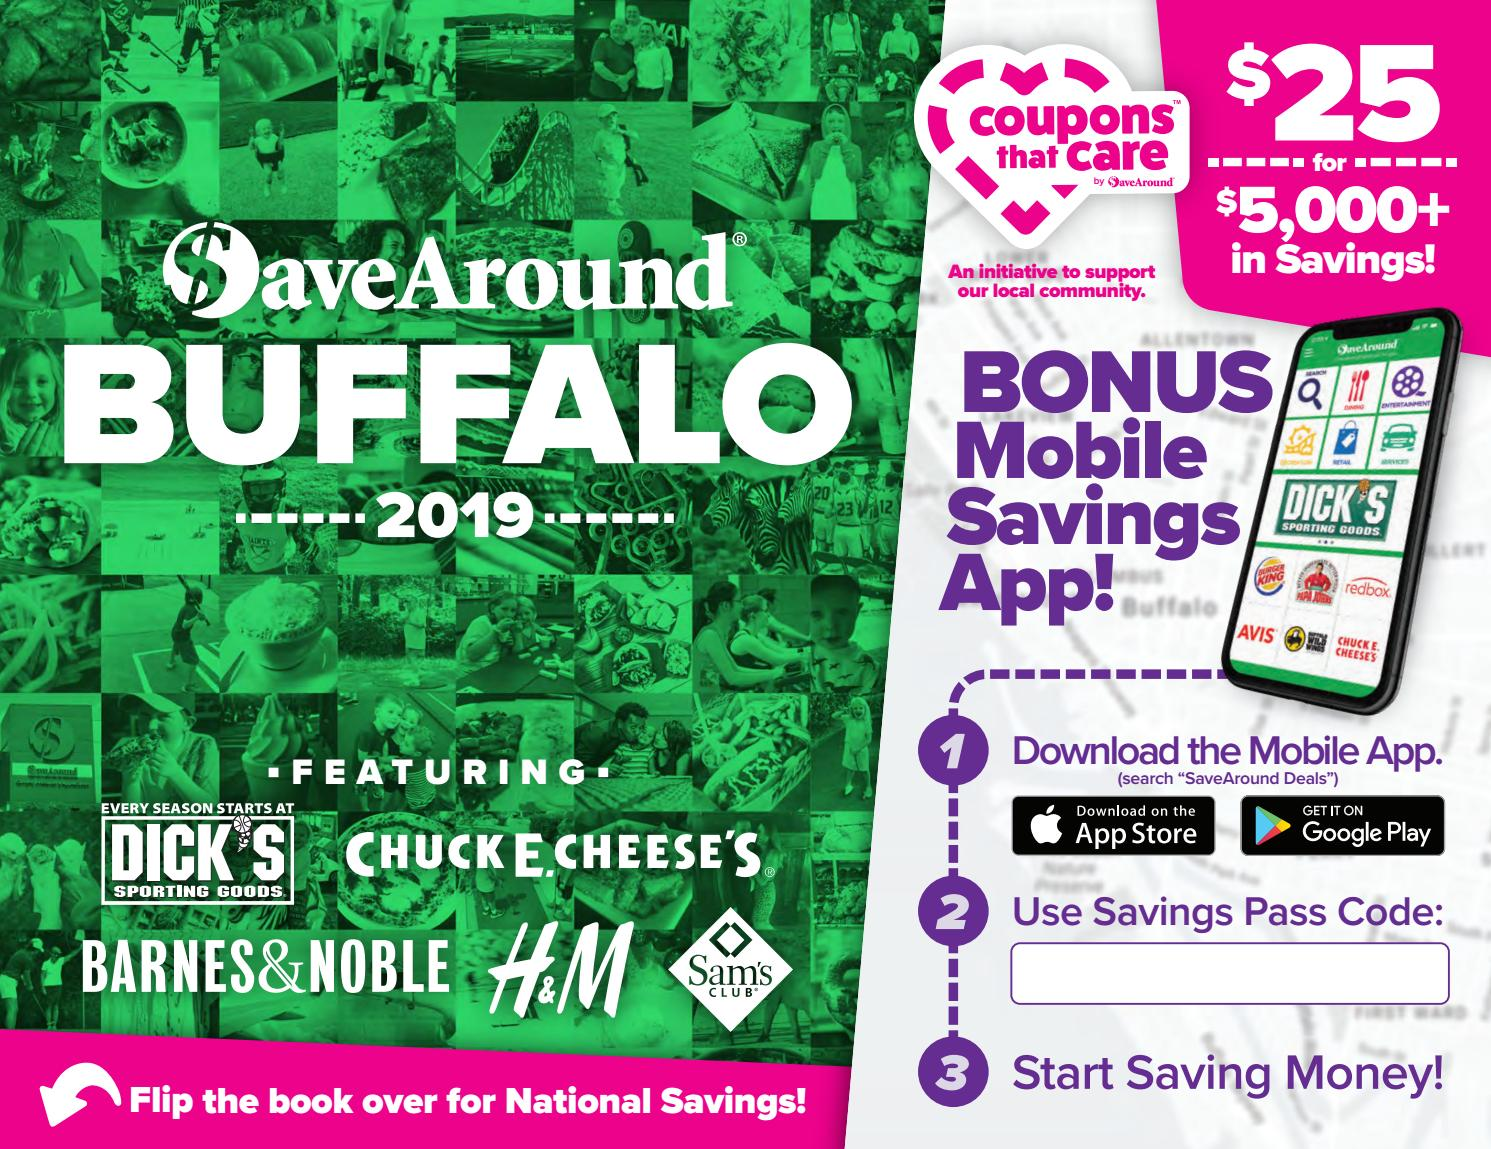 abba0e2d0478 Buffalo NY by SaveAround - issuu